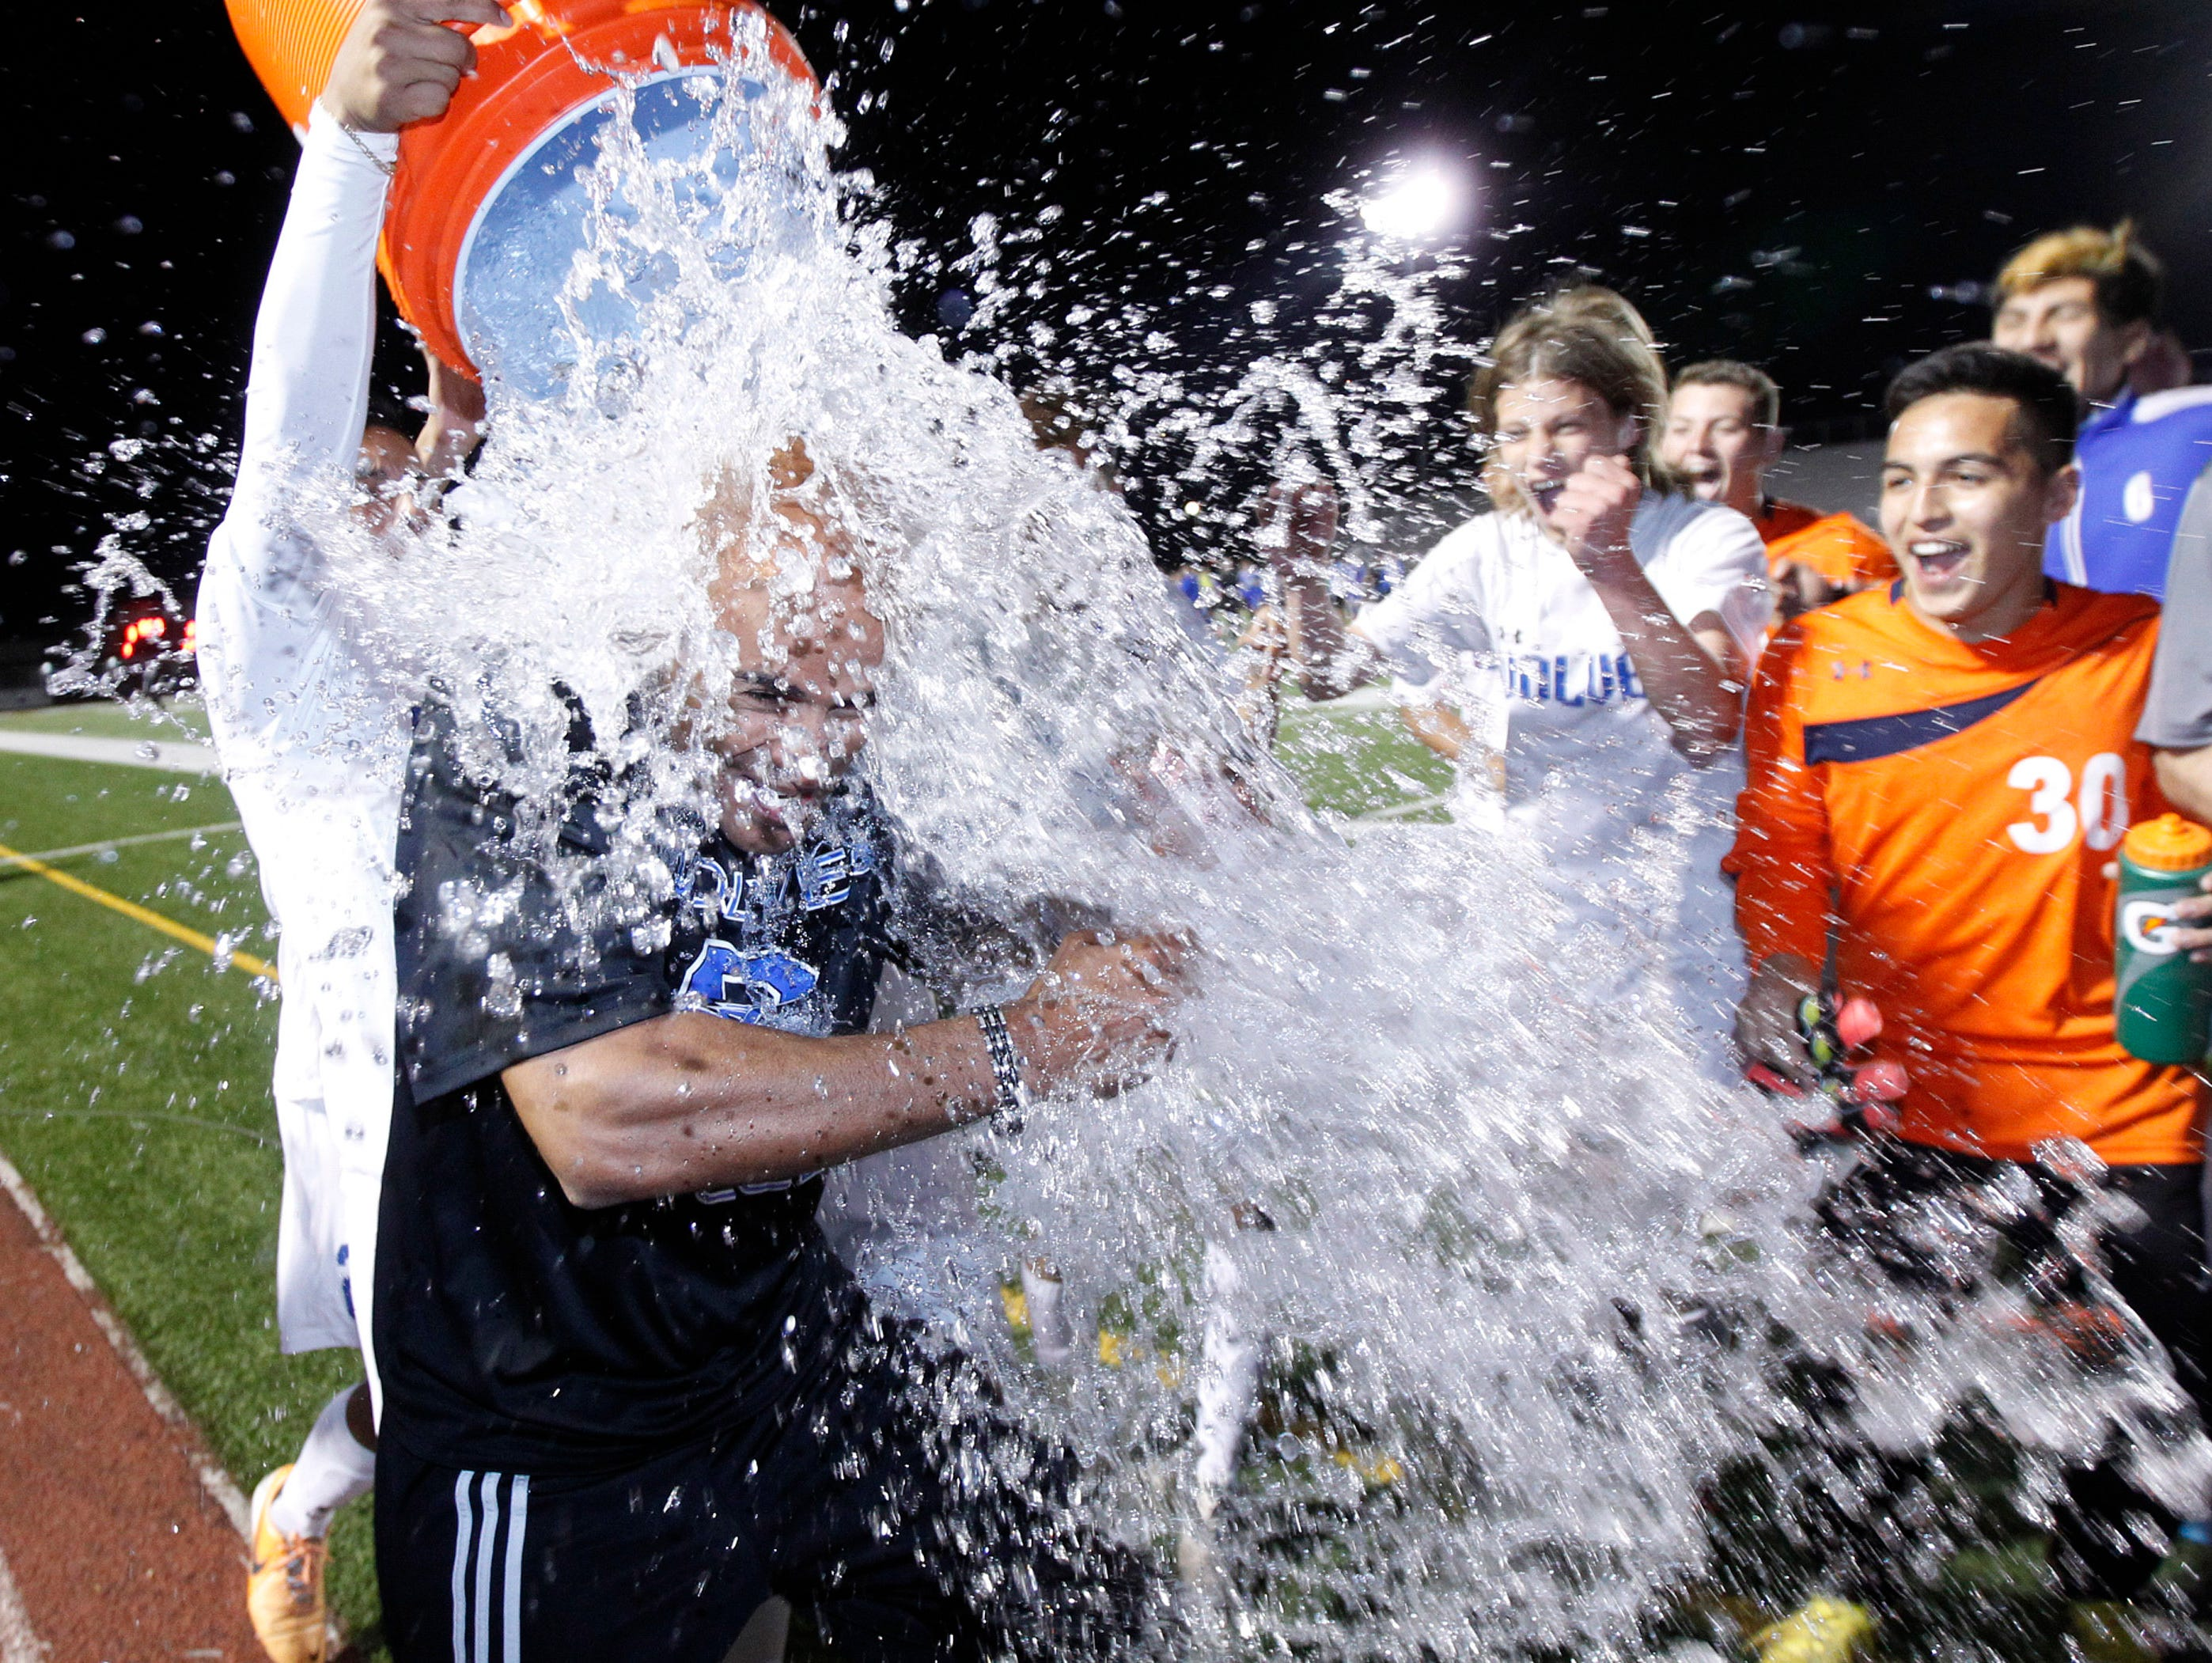 Chandler head coach Sasha Hunter gets doused after their 3-2 win against Sandra Day O'Connor in their Division I boys soccer championship Saturday, Feb. 14, 2015 in Gilbert, Ariz.